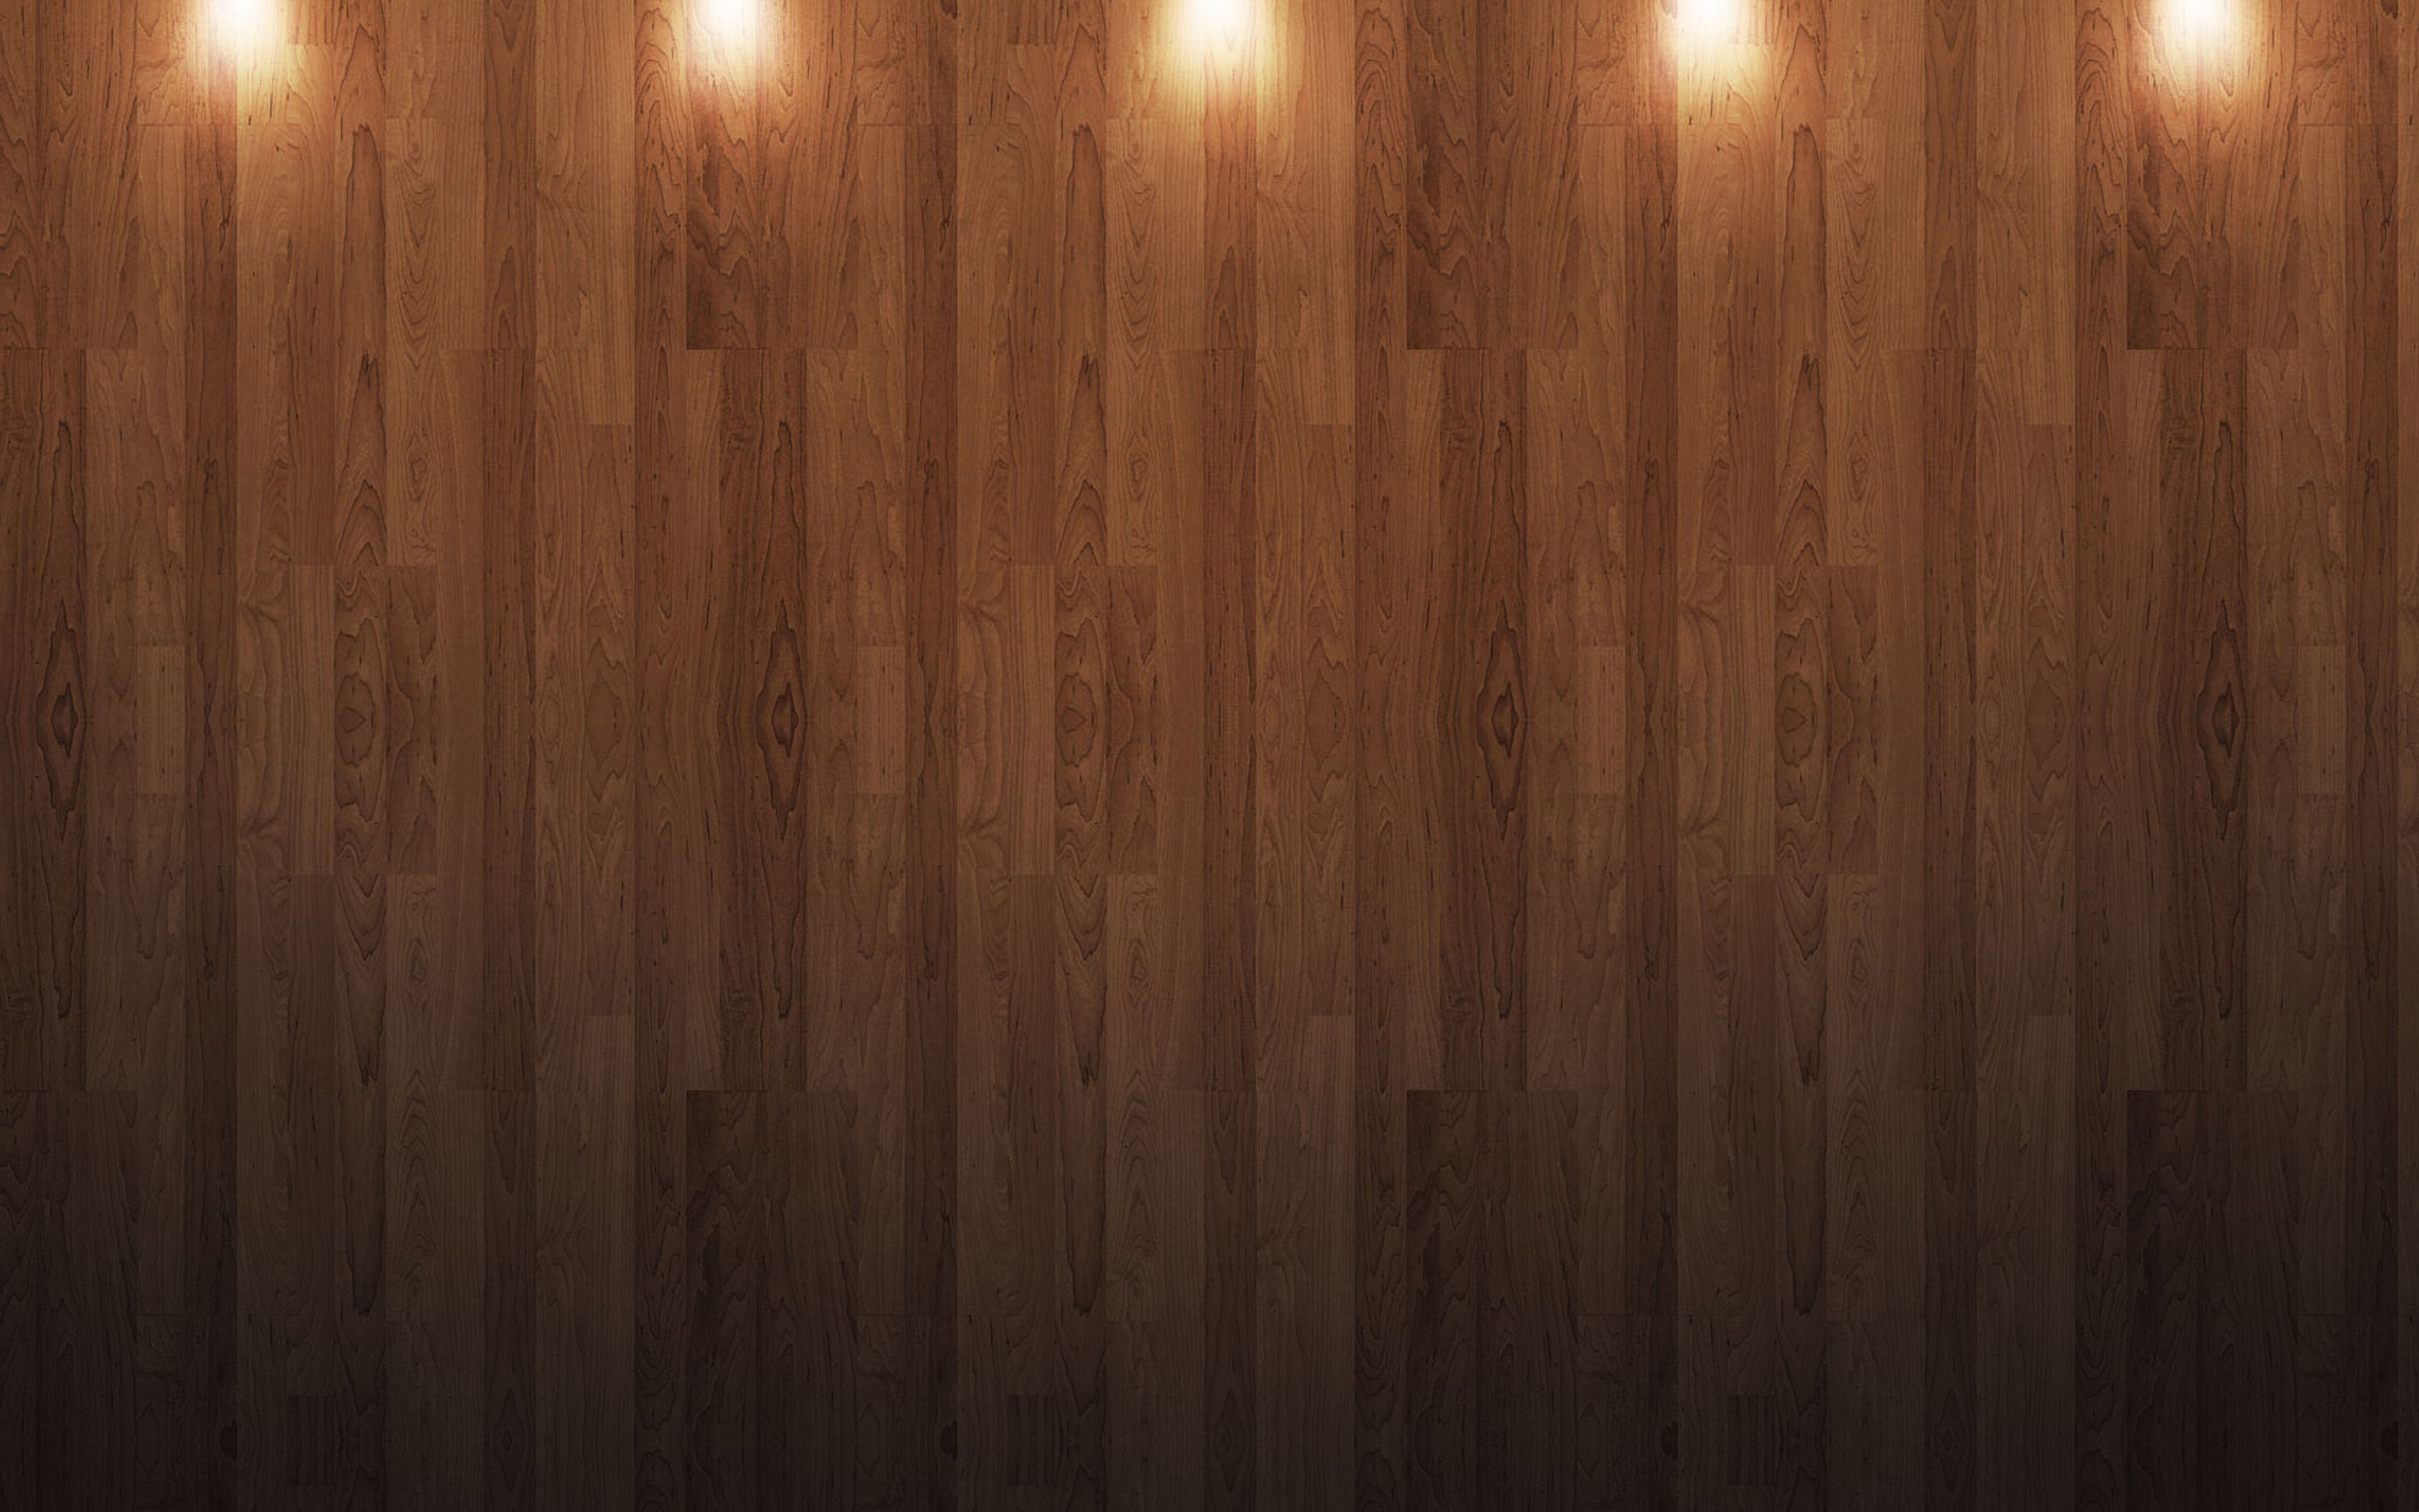 Backgrounds Wood Group (60+)